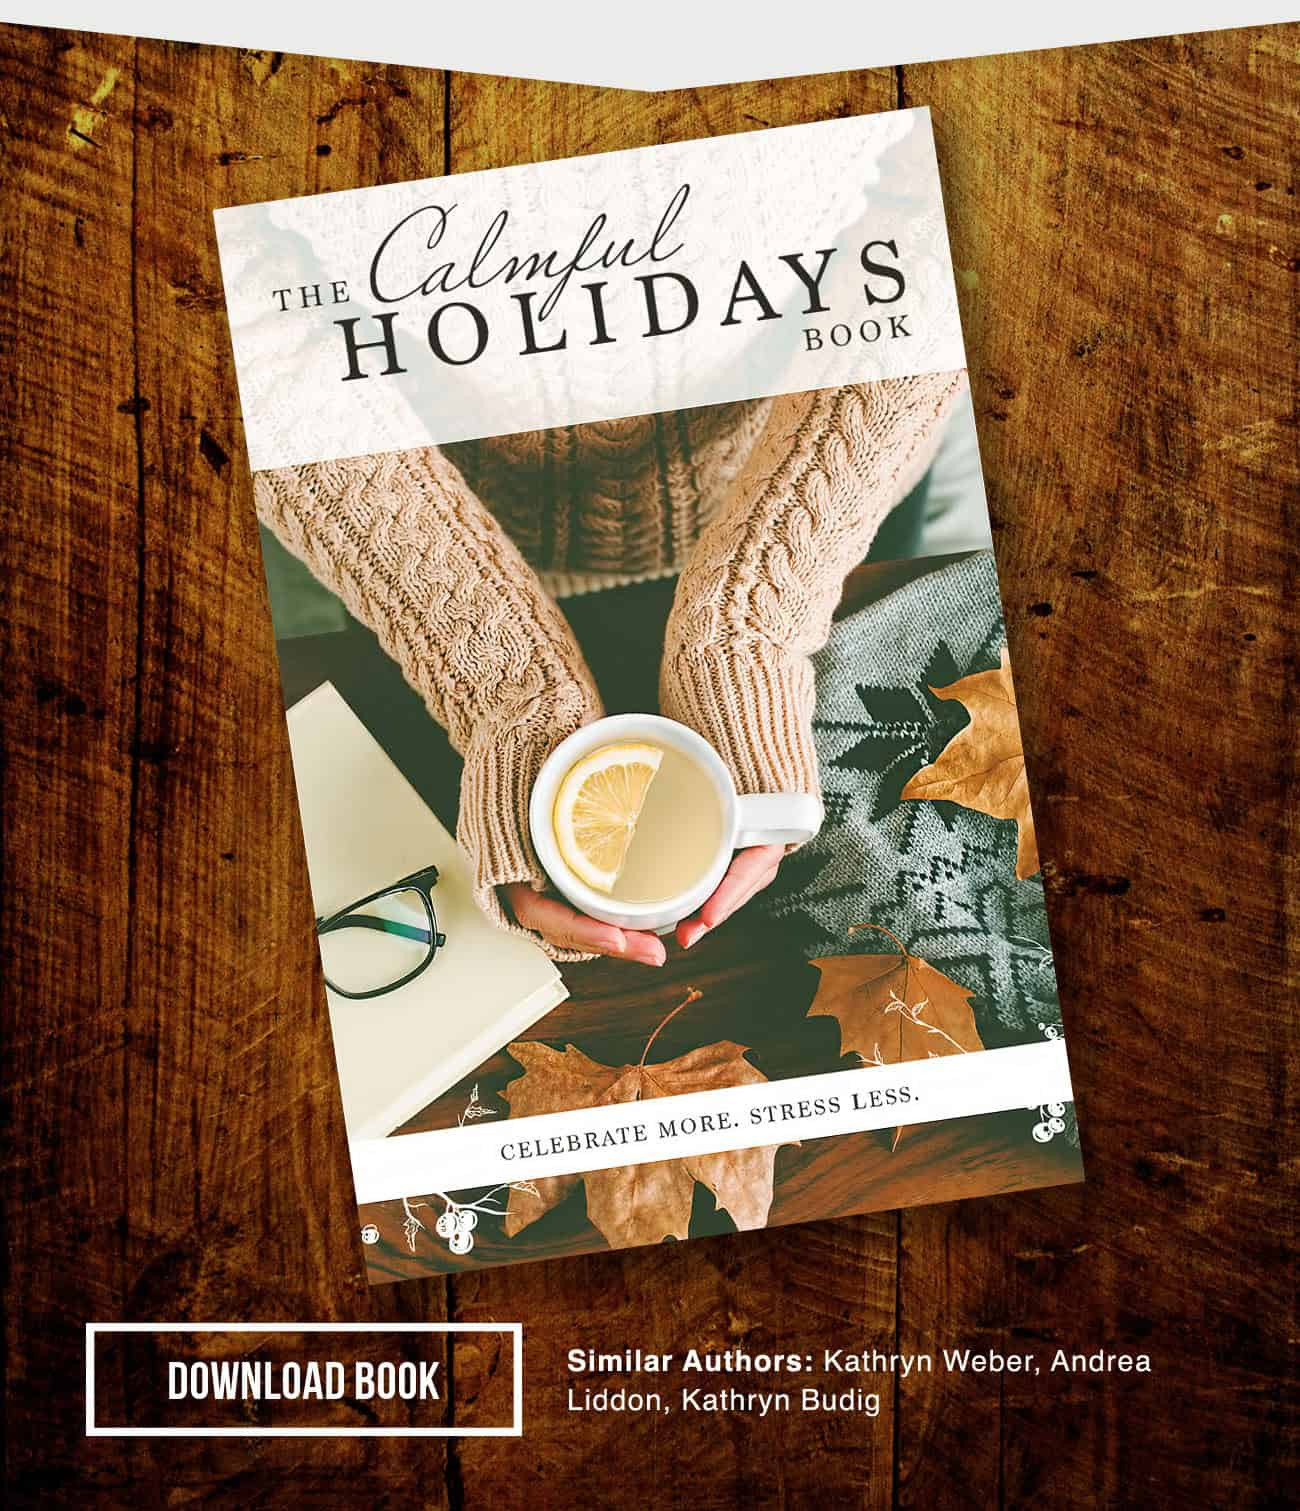 The Calmful Holidays: Free eBook